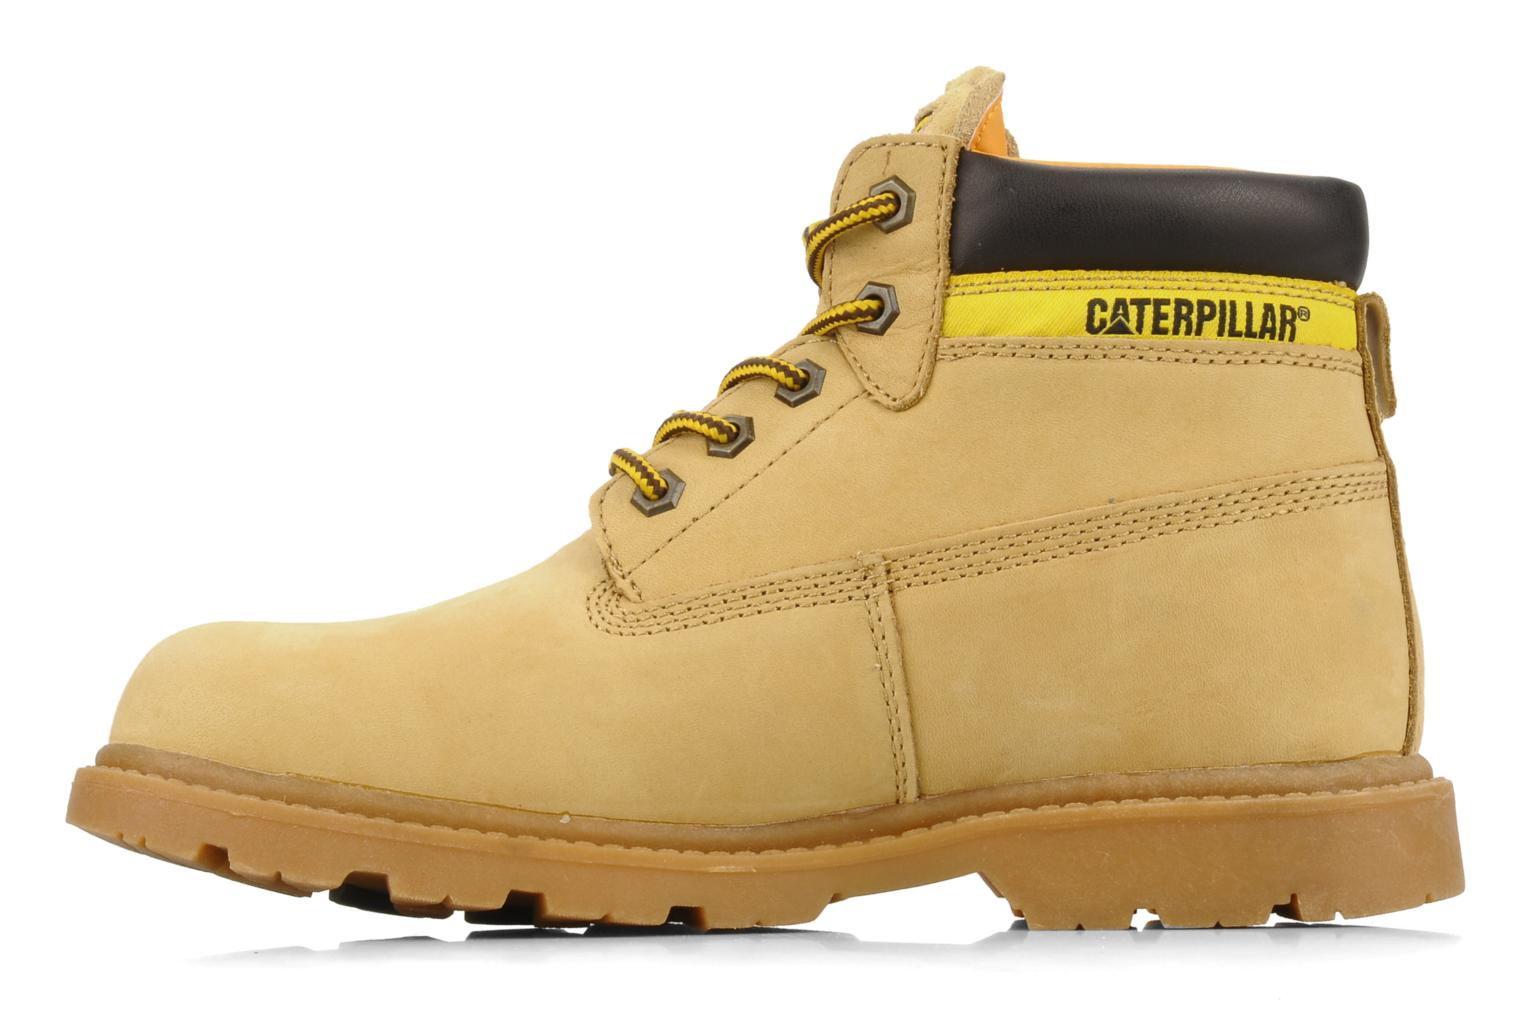 Bottines et boots Caterpillar Colorado Plus Beige vue face